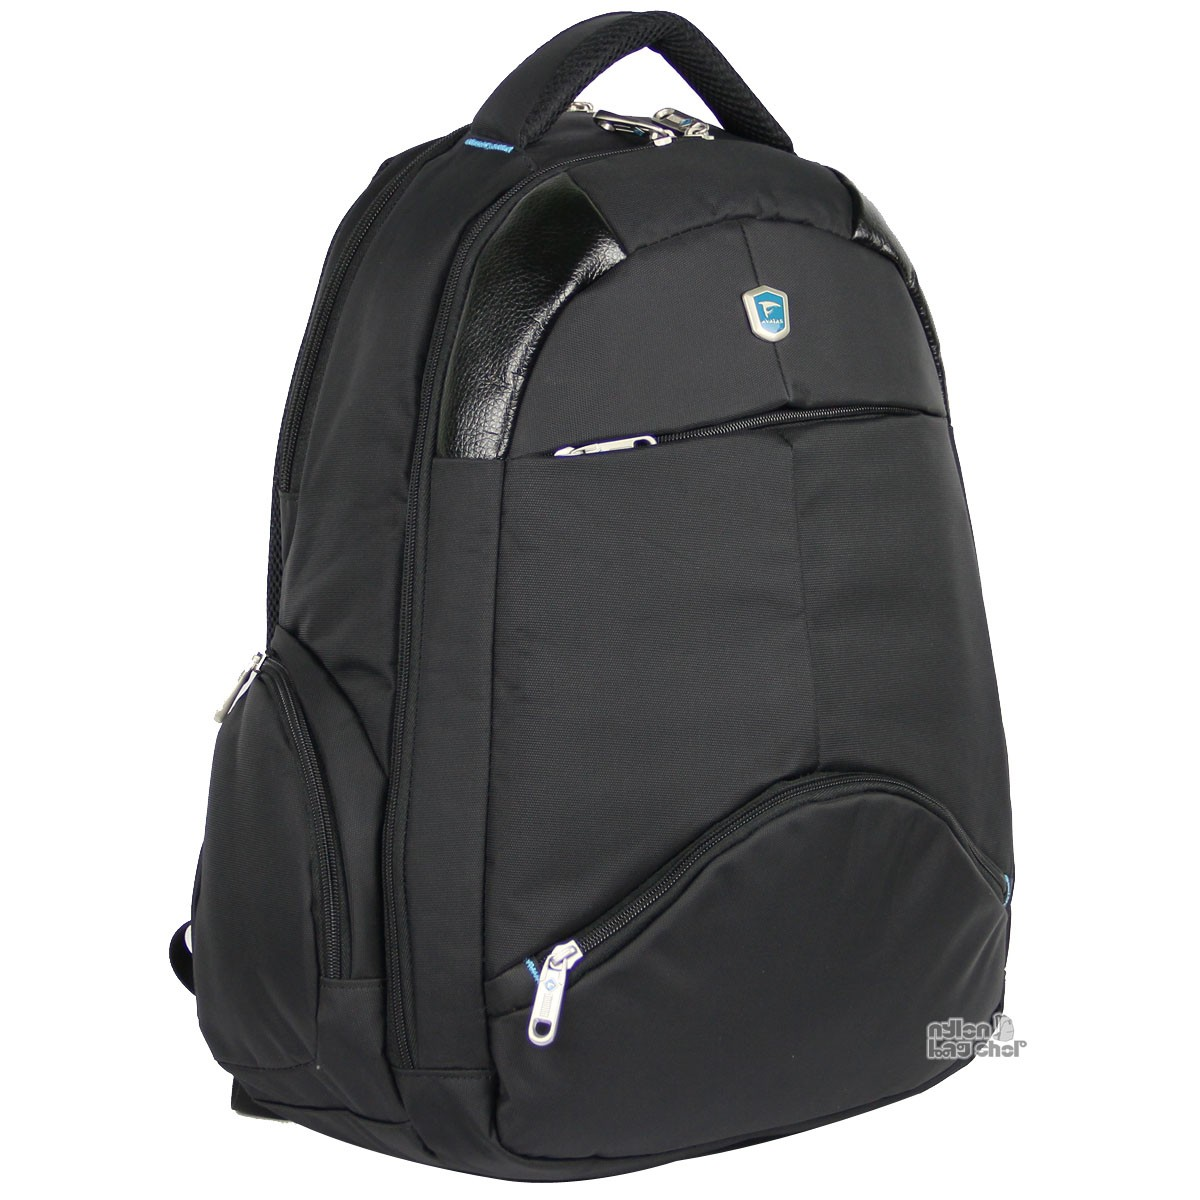 Black Laptop Backpack ulce3r8M